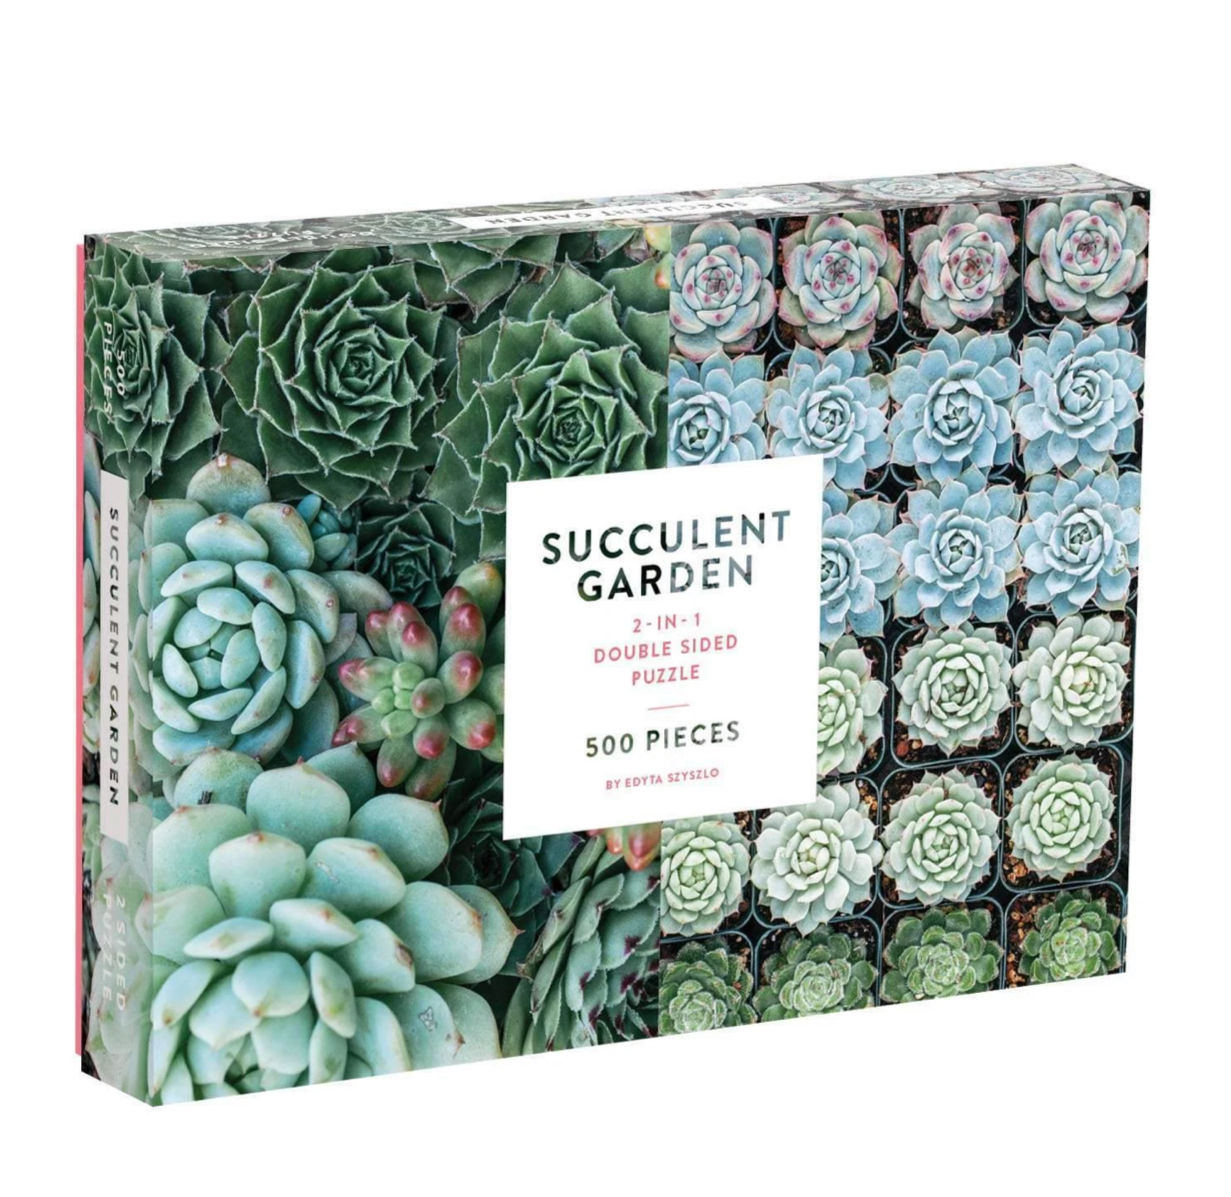 Succulent Garden Double-Sided 500 Piece Jigsaw Puzzle